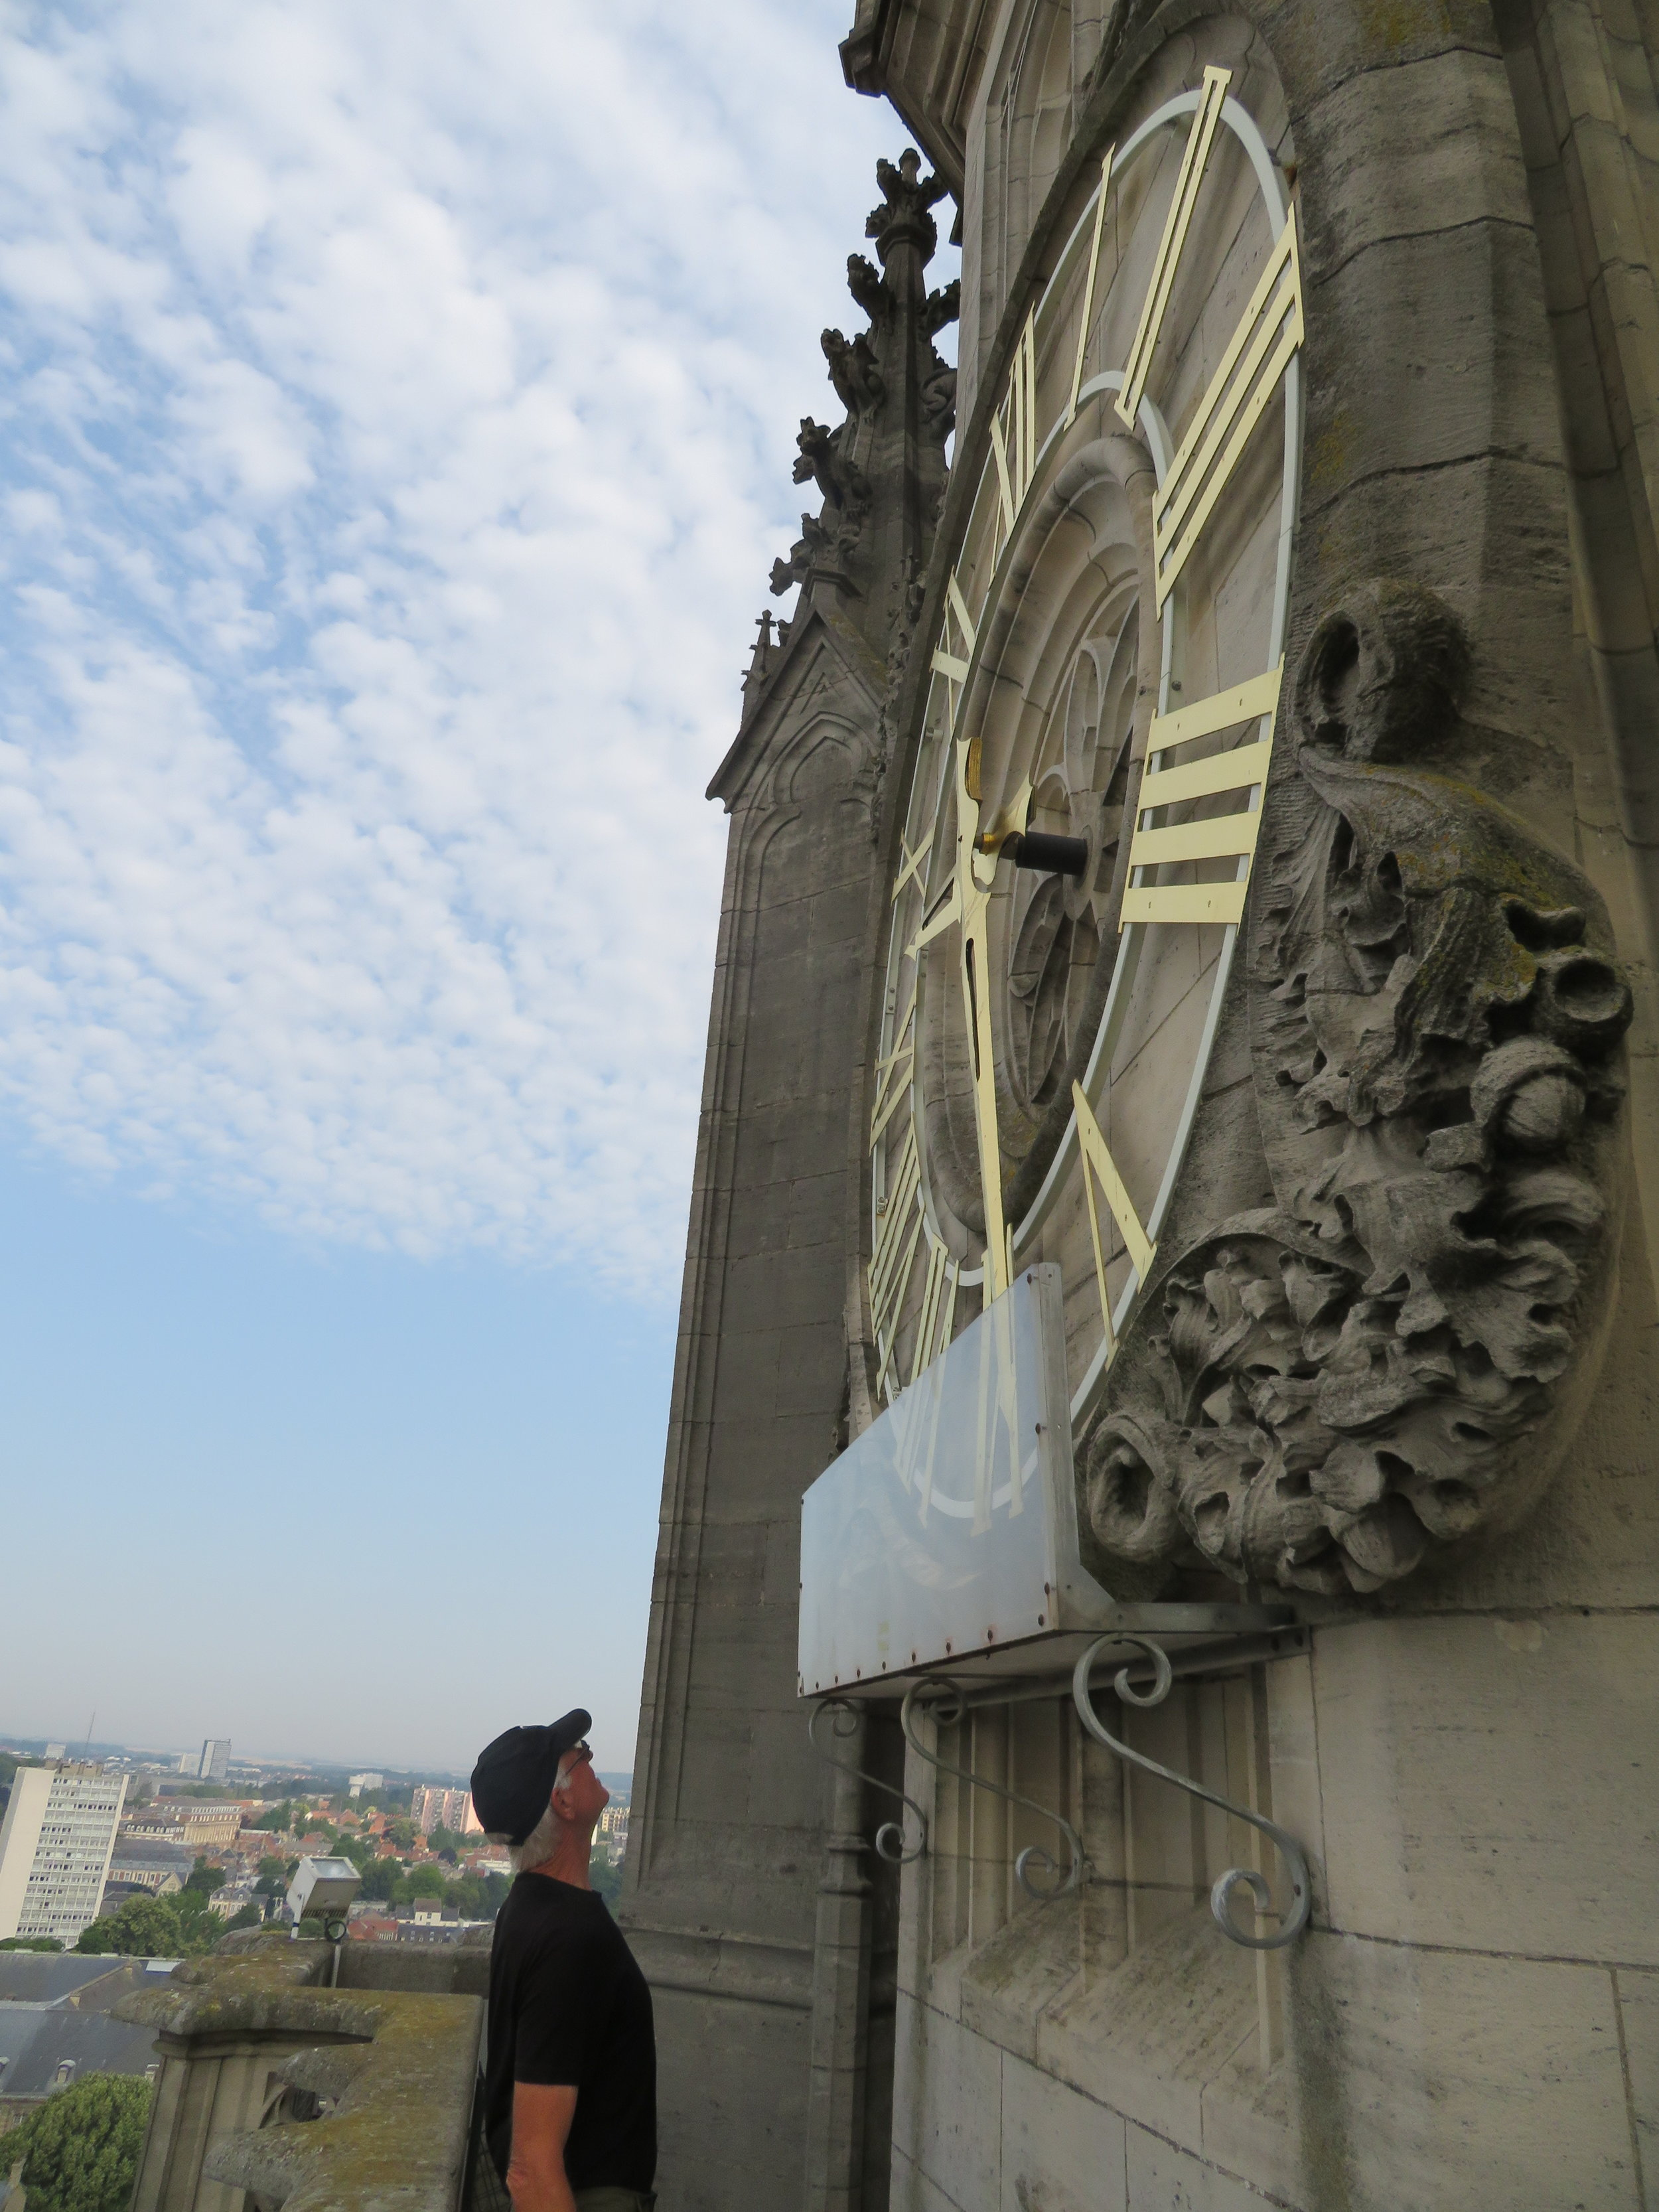 We climbed to the top of the belfry, just under the town clock.